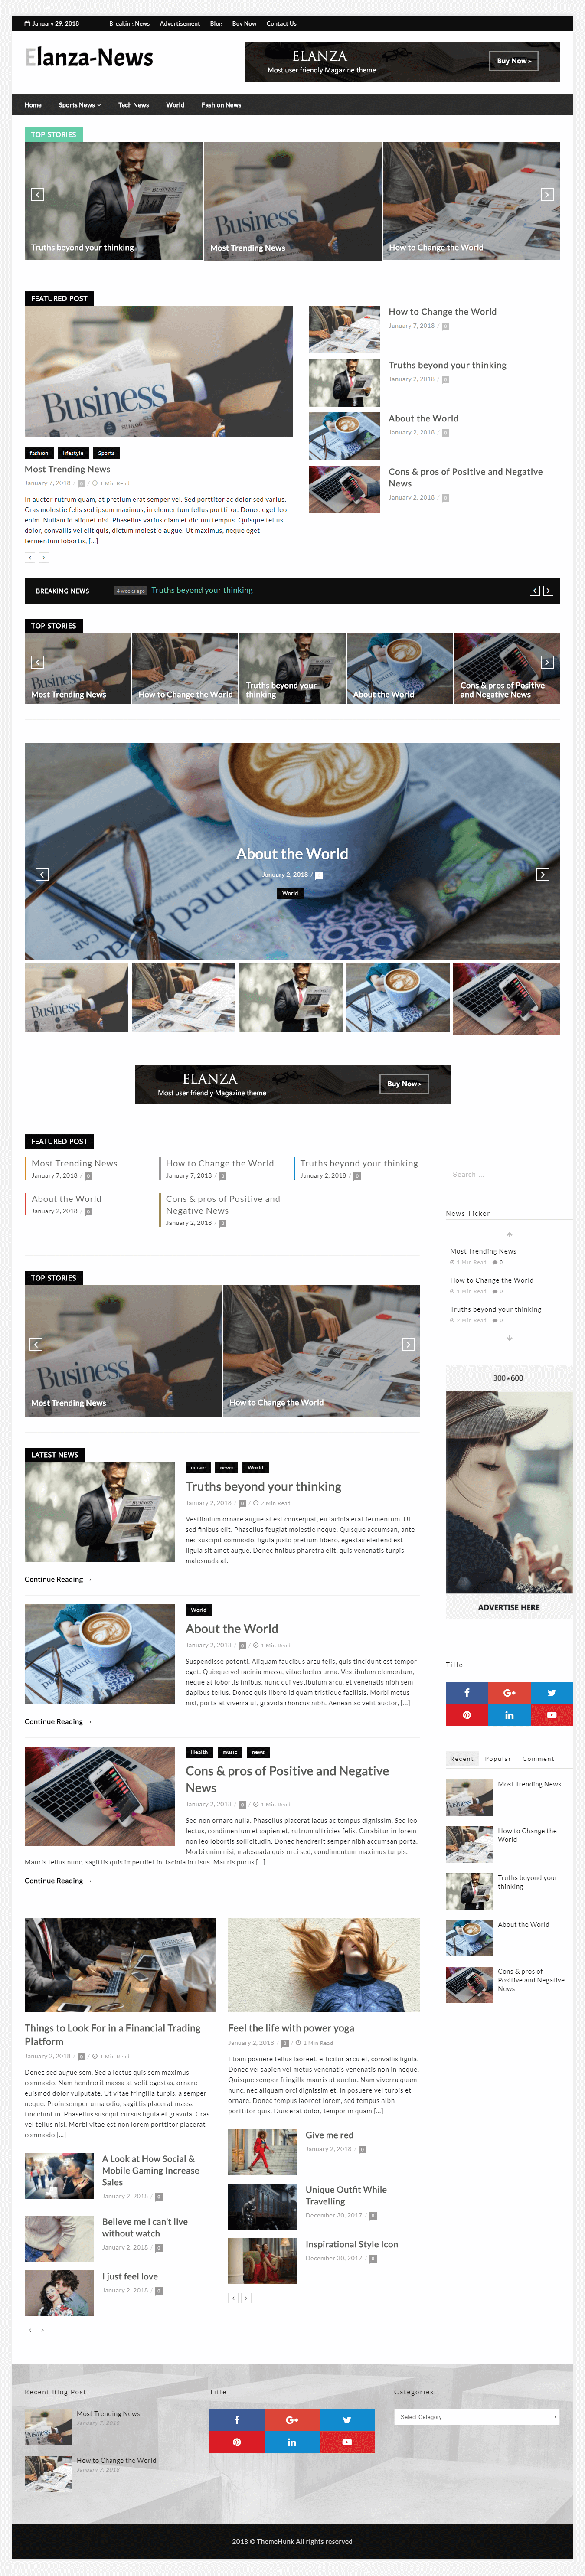 Newspaper website